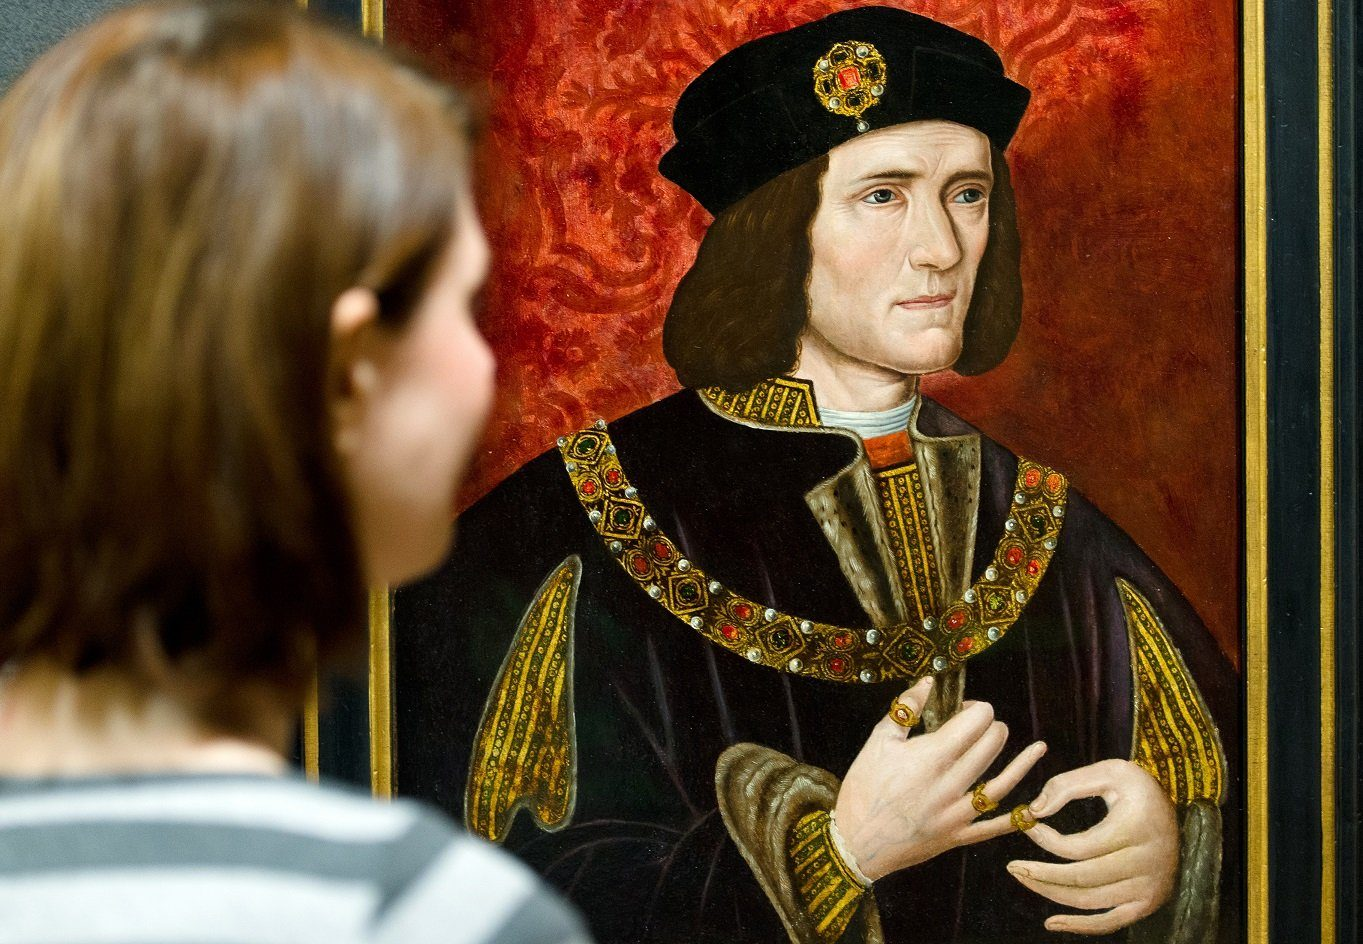 painting of Britain's King Richard III by an unknown artist is displayed in the National Portrait Gallery in central London